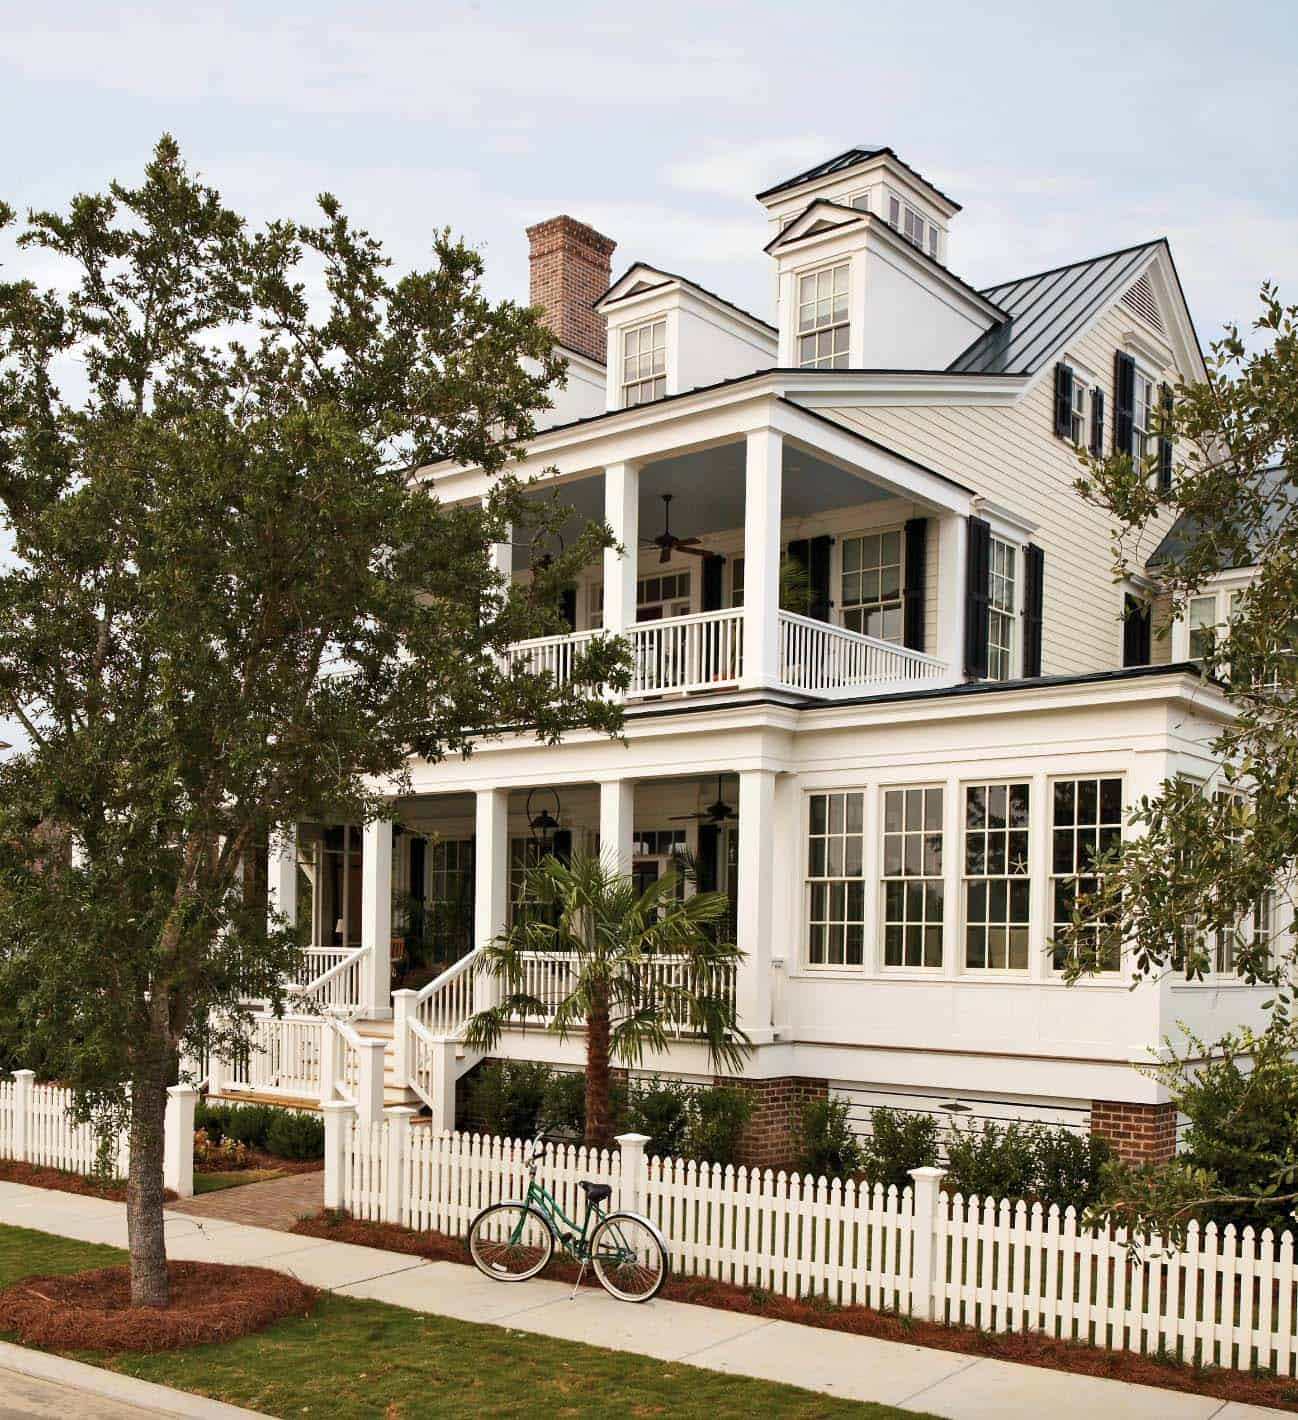 Classic Decorating Ideas For Plantation Style Homes: Coastal Style Home In North Carolina Showcases Inviting